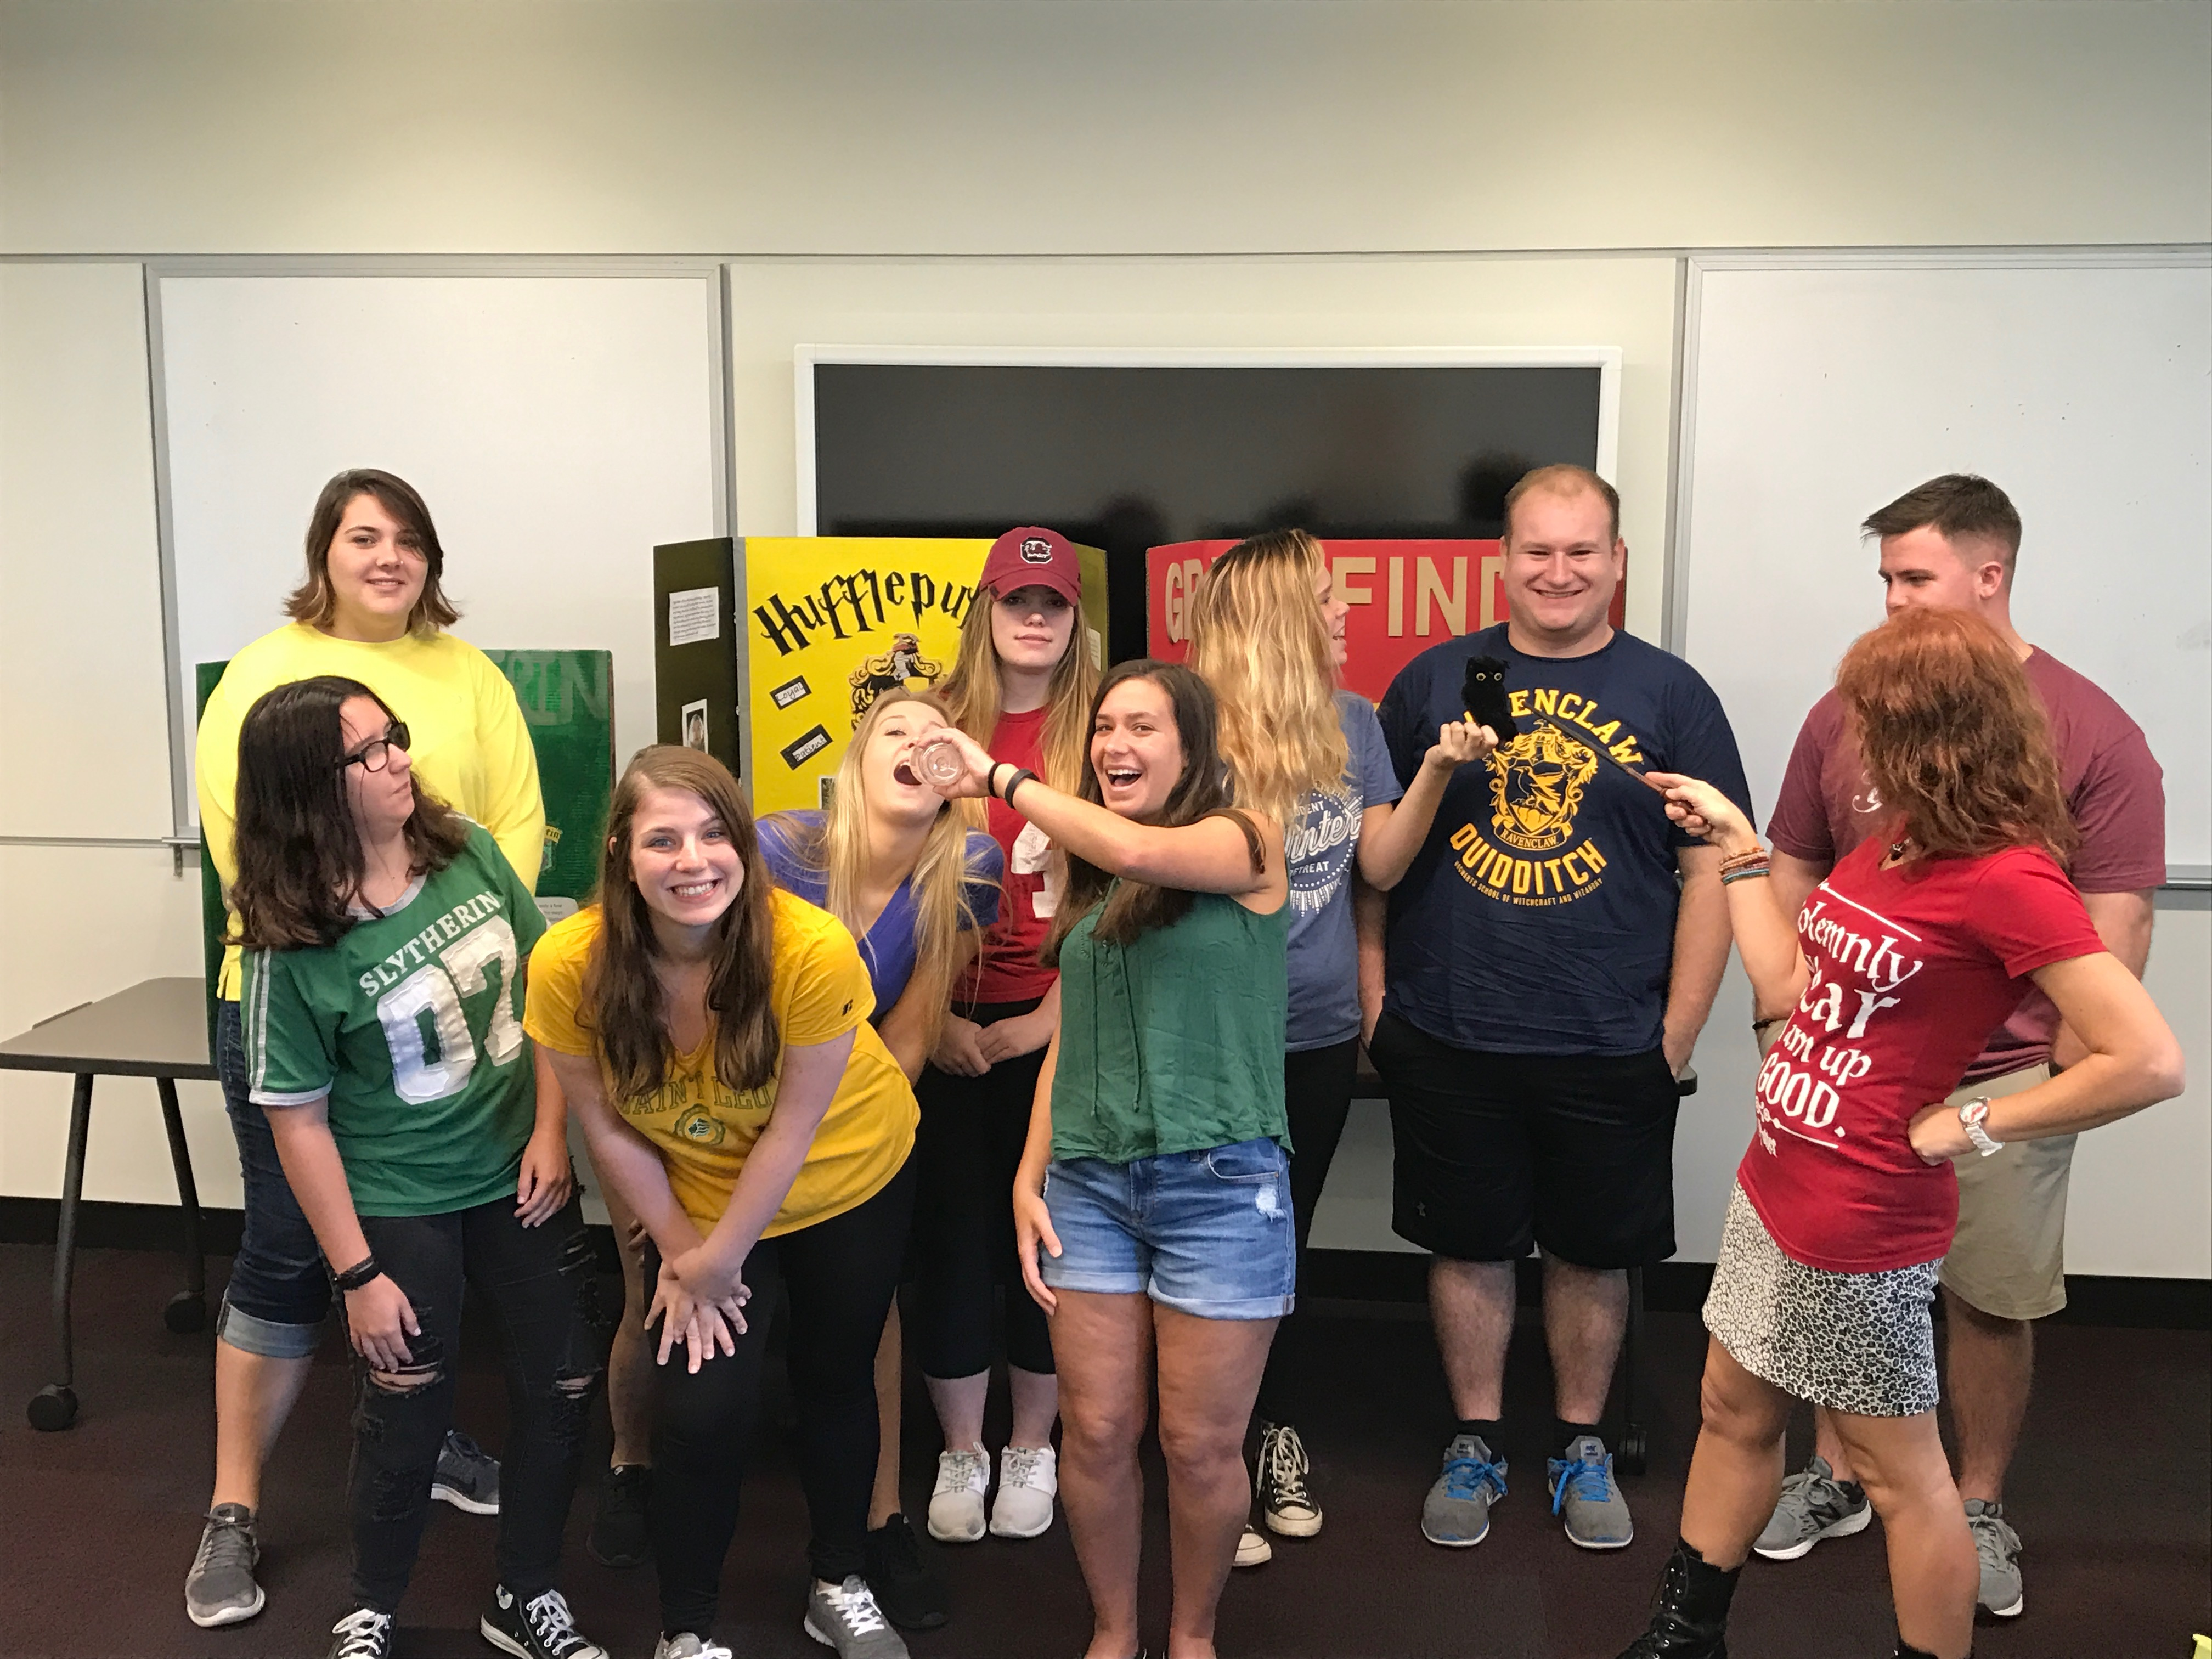 A look inside The World of Harry Potter class at Saint Leo University